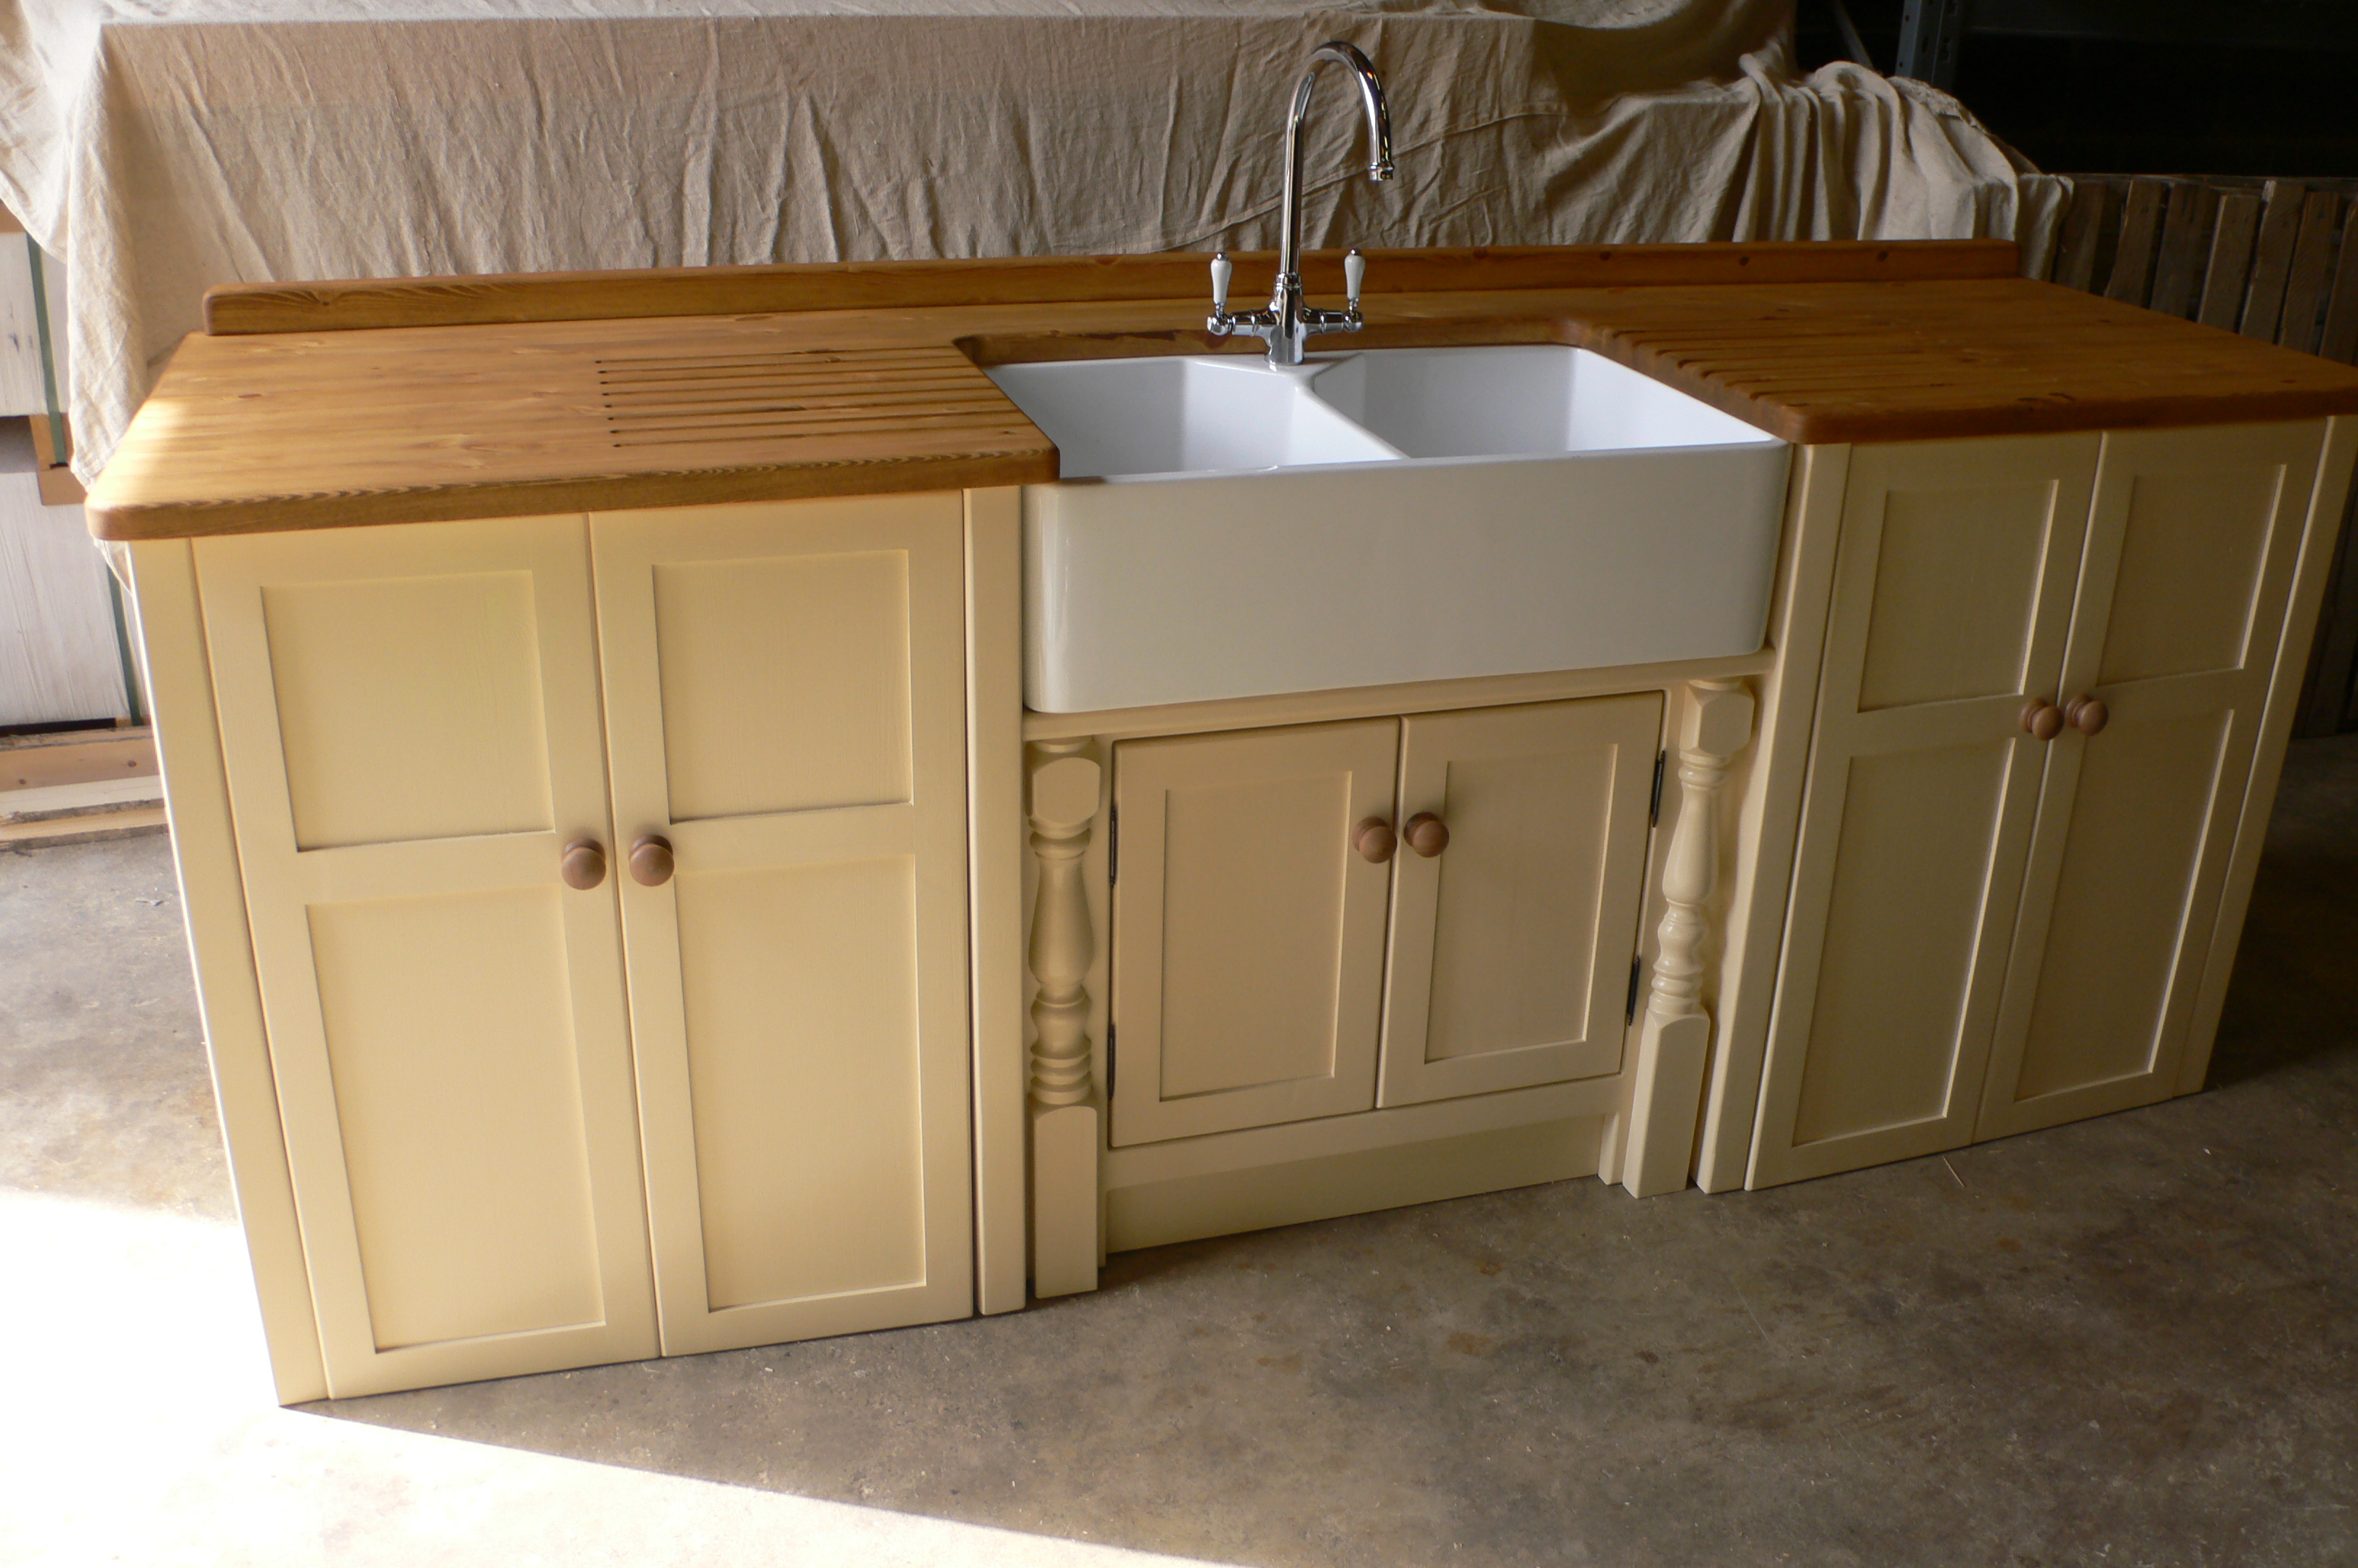 Double Butler Sink And Appliance Unit The Olive Branch